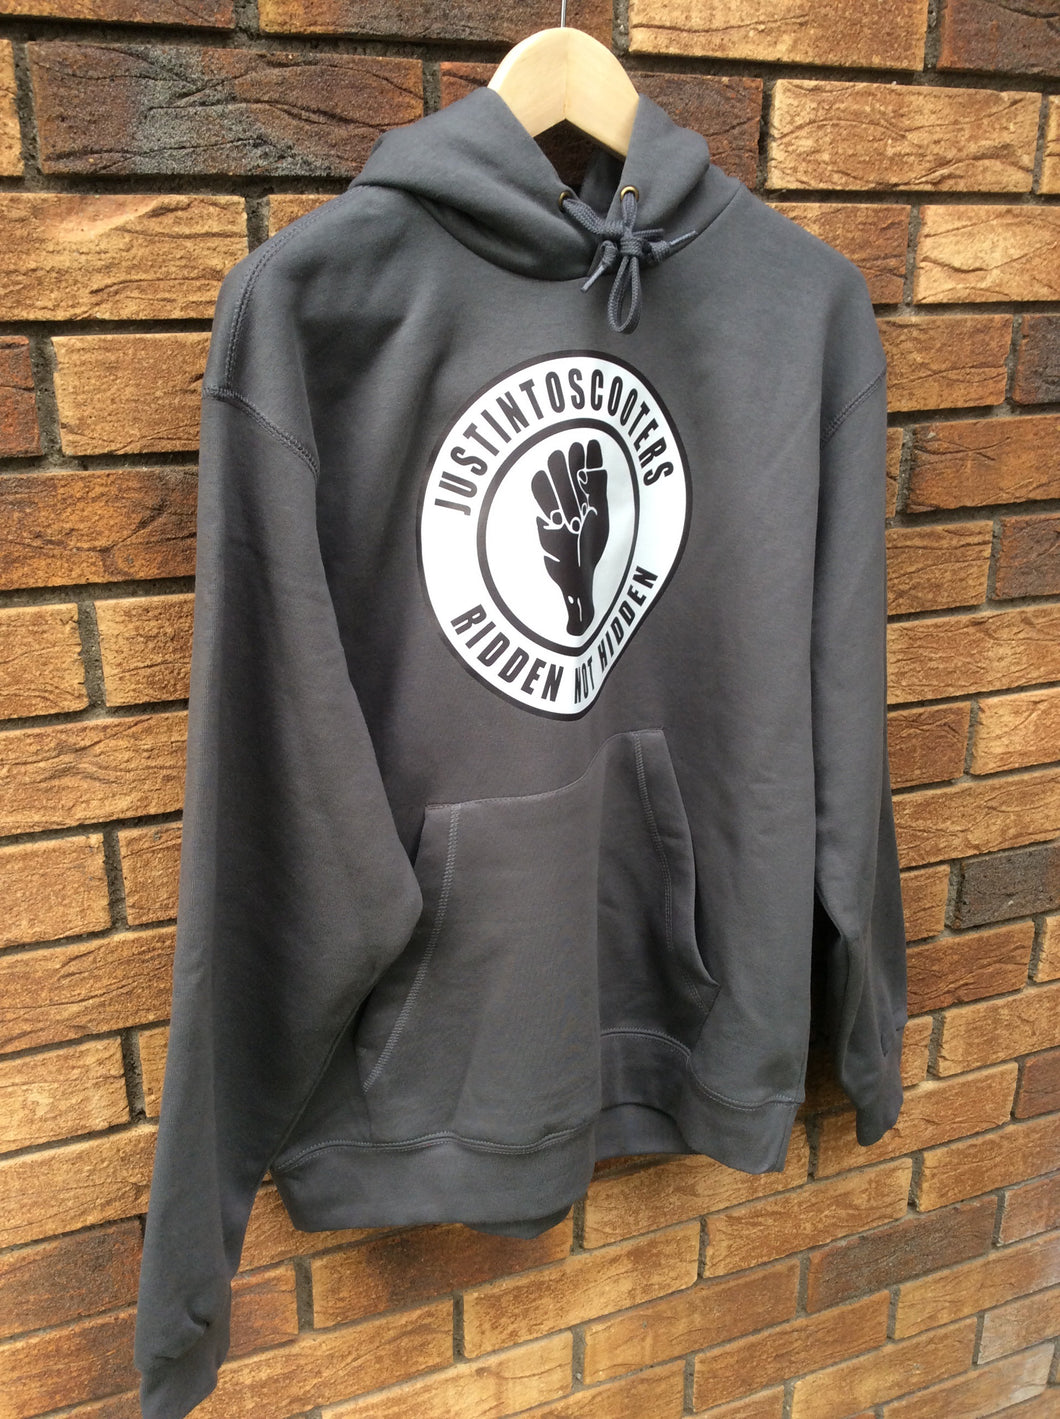 Justintoscooters Northern Soul Logo Hoodie